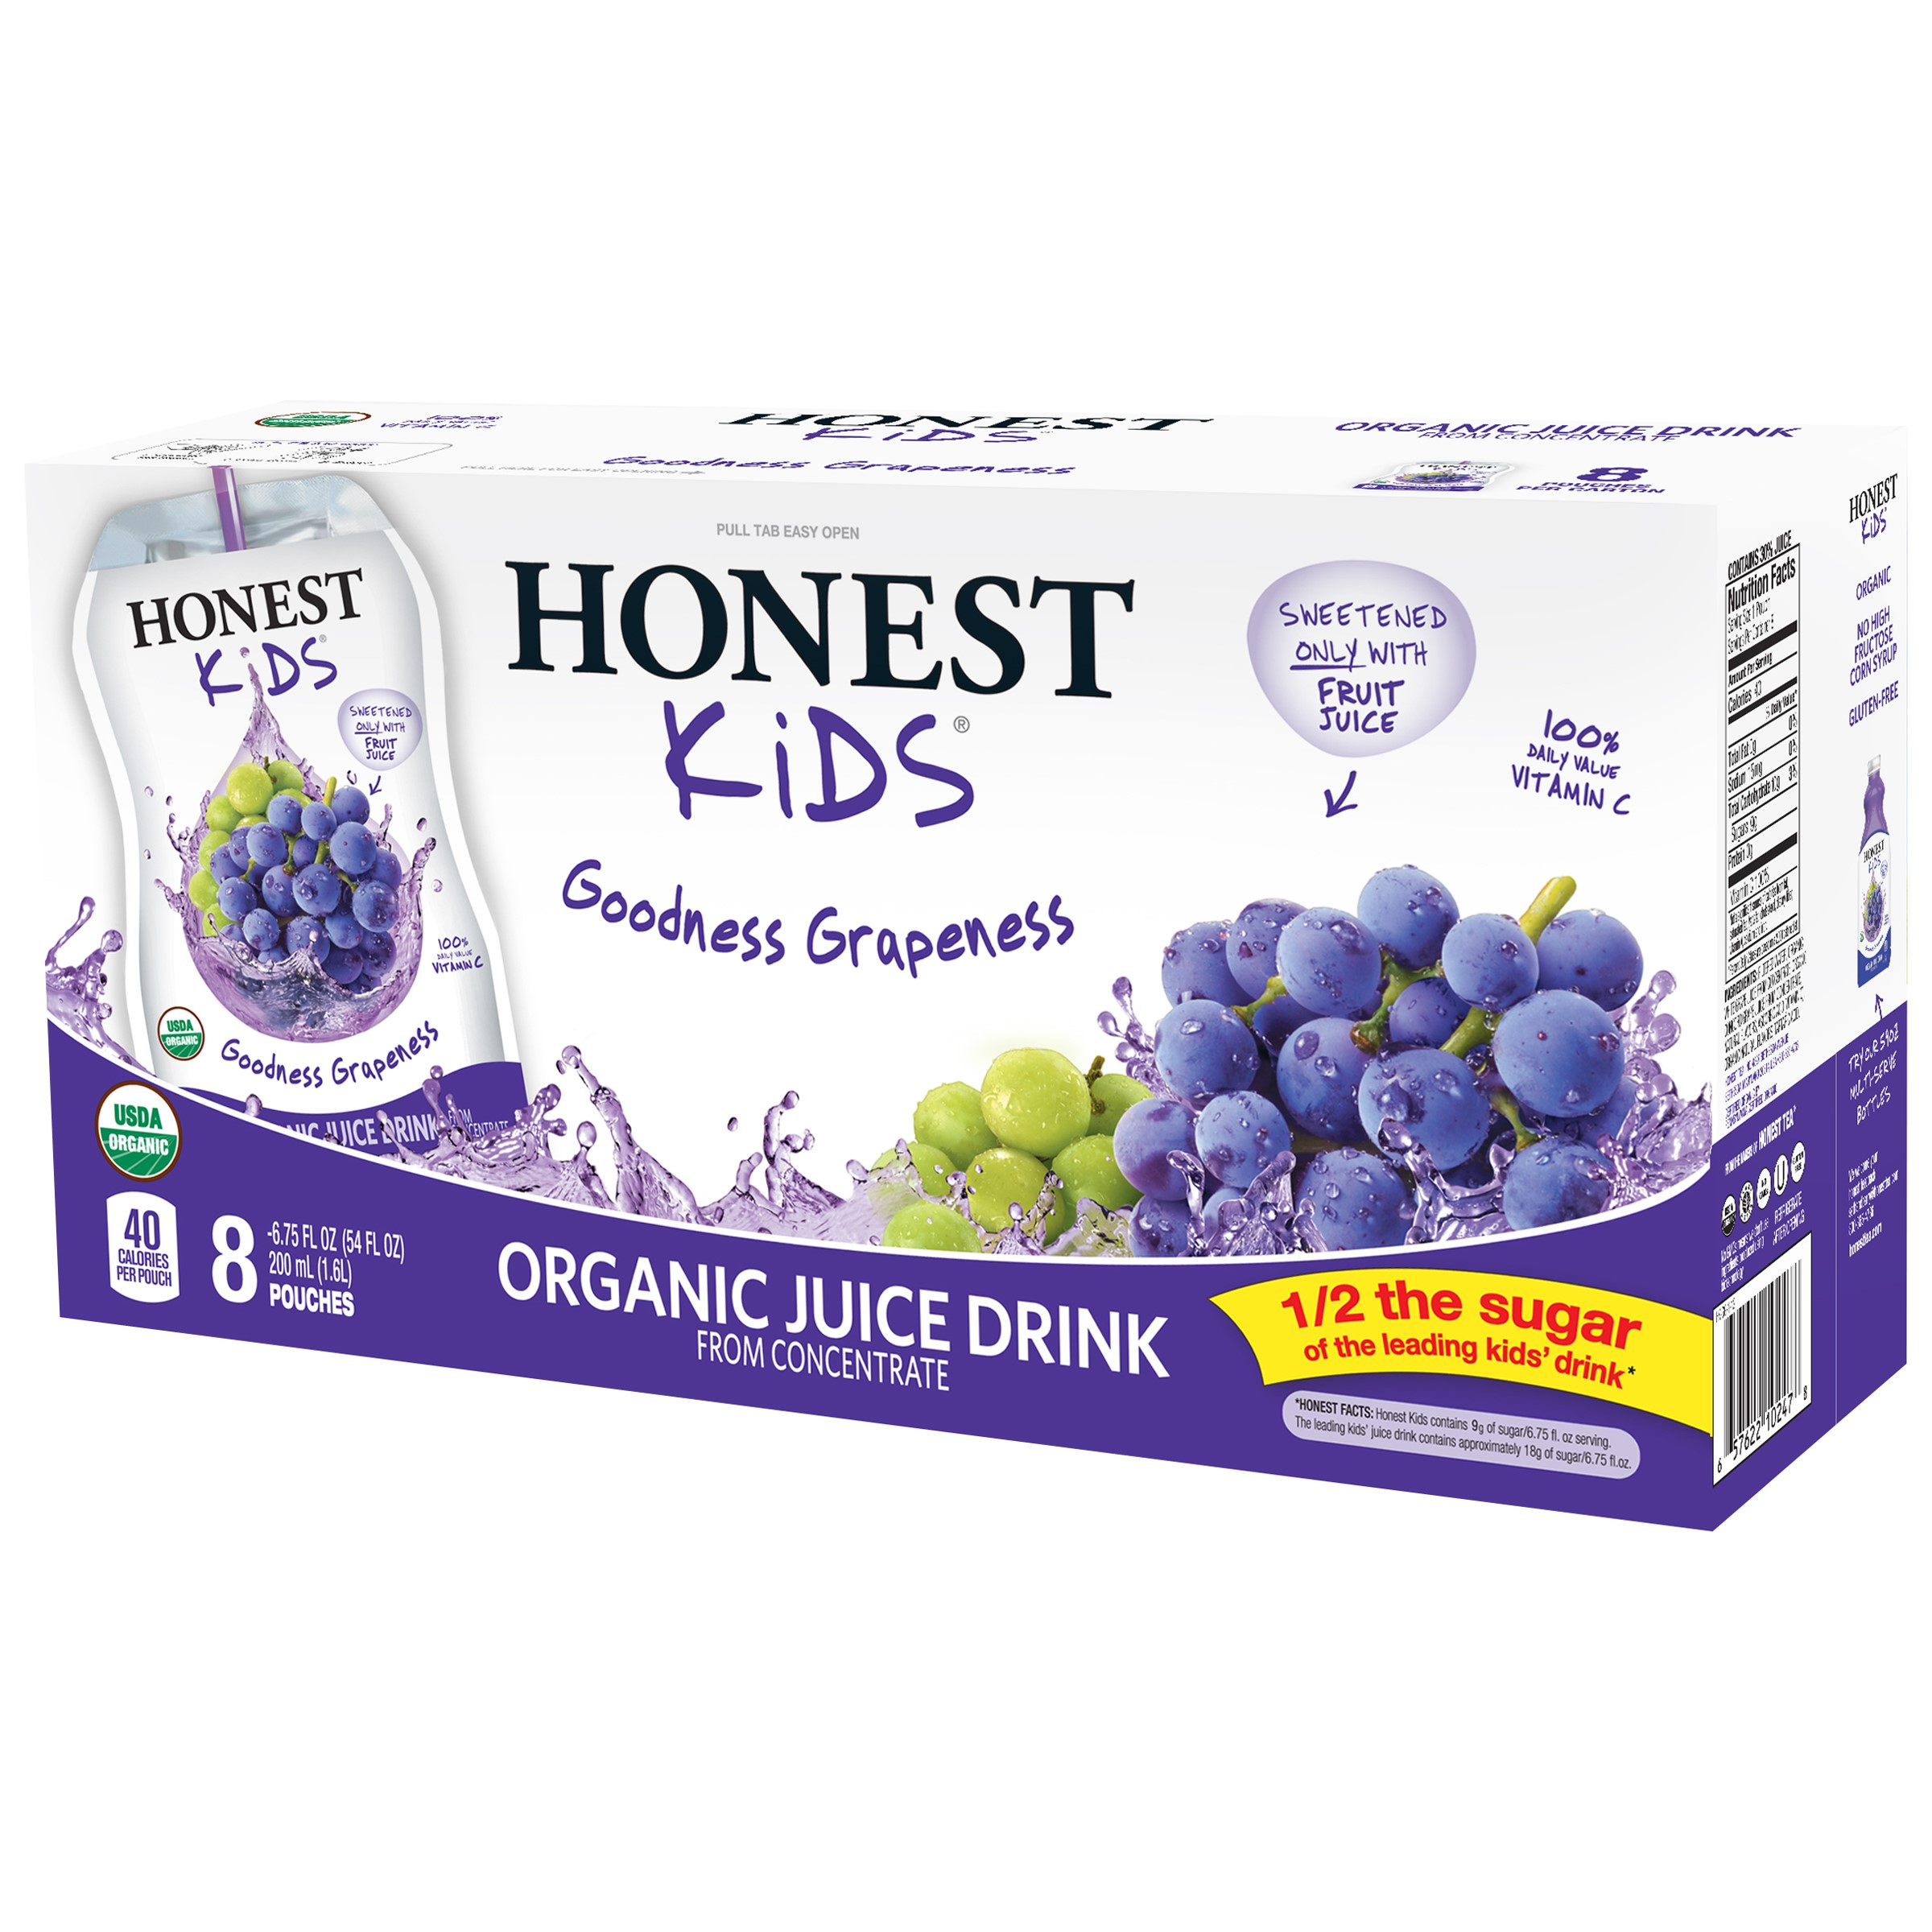 Honest Kids Goodness Grapeness Organic Juice Drink, 6.75 Fl. Oz., 8 Count